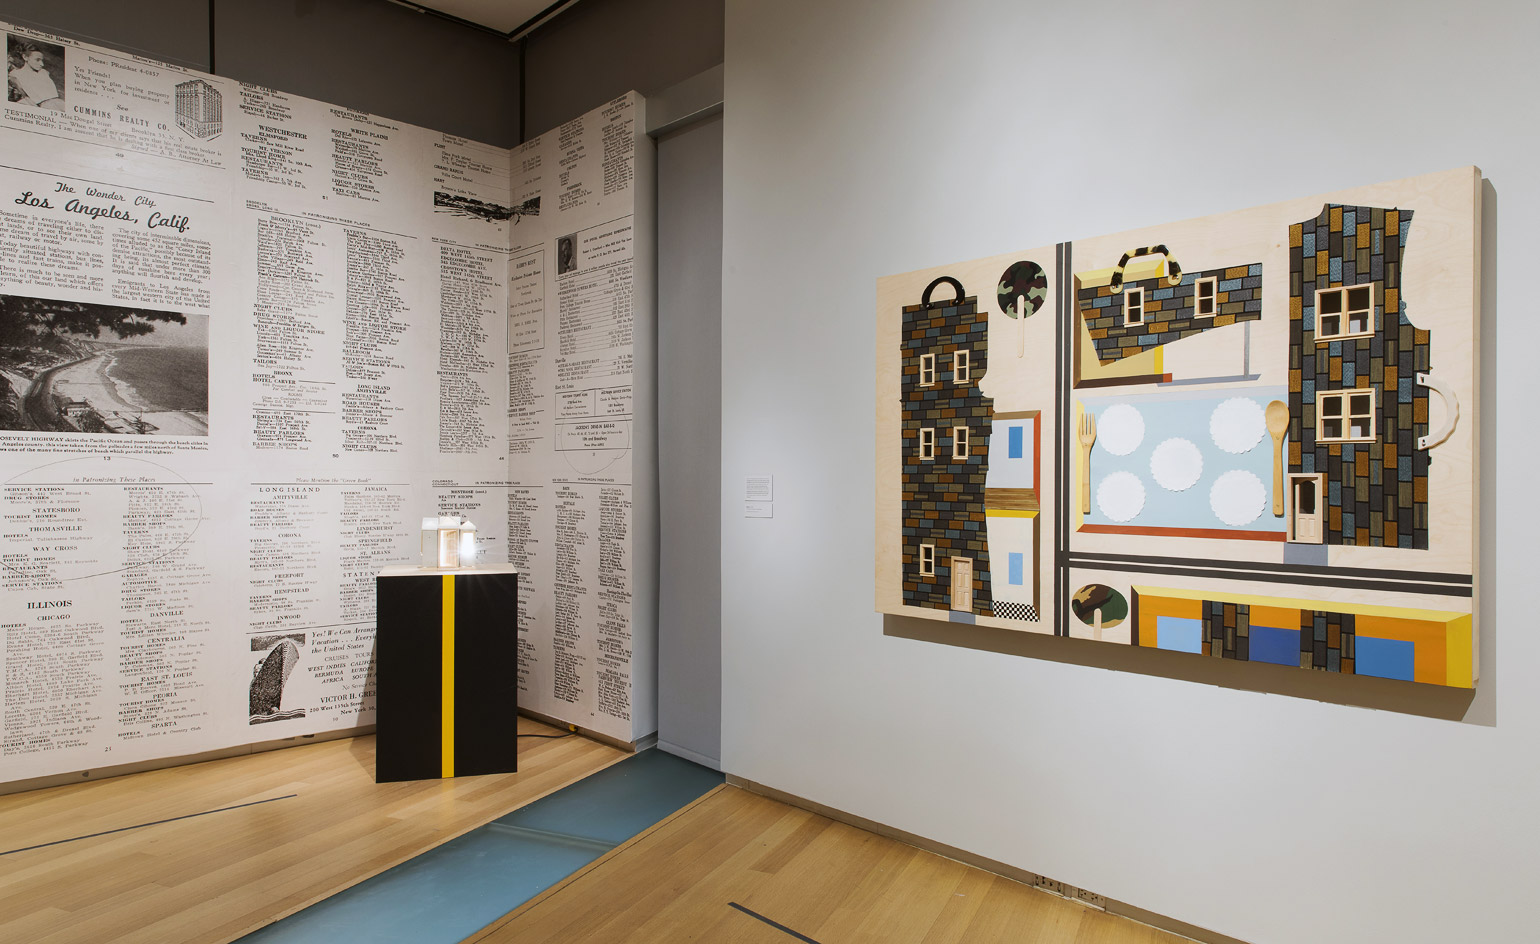 Installation view of 'Sanctuary' by Derrick Adams at MAD, New York. Photography: Jenna Bascom. Courtesy of The Museum of Arts and Design